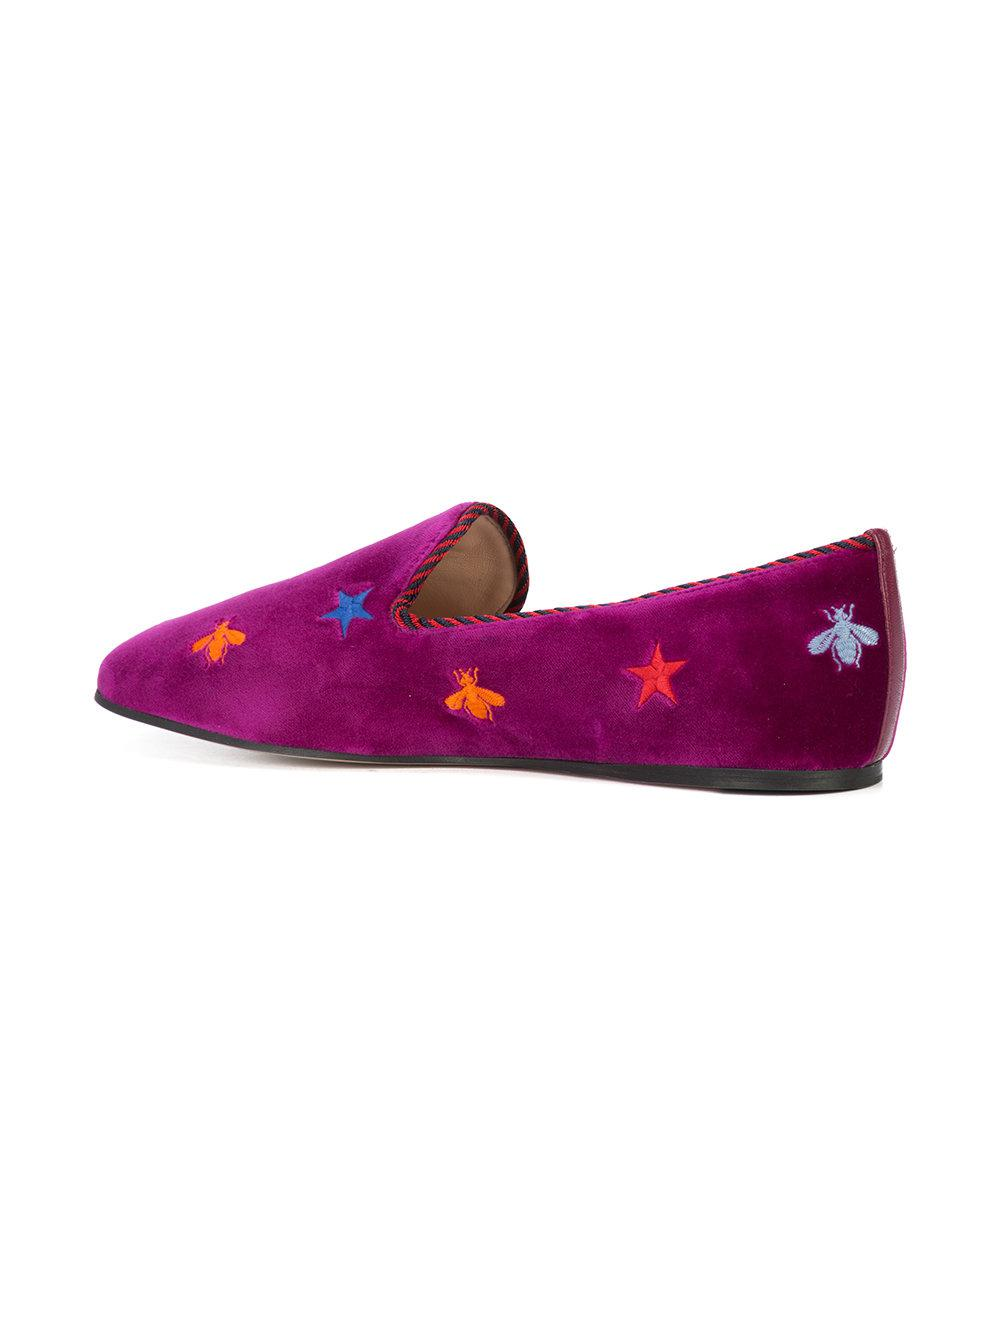 embroidered suede slippers - Pink & Purple Blue Bird Shoes A00YOxmv